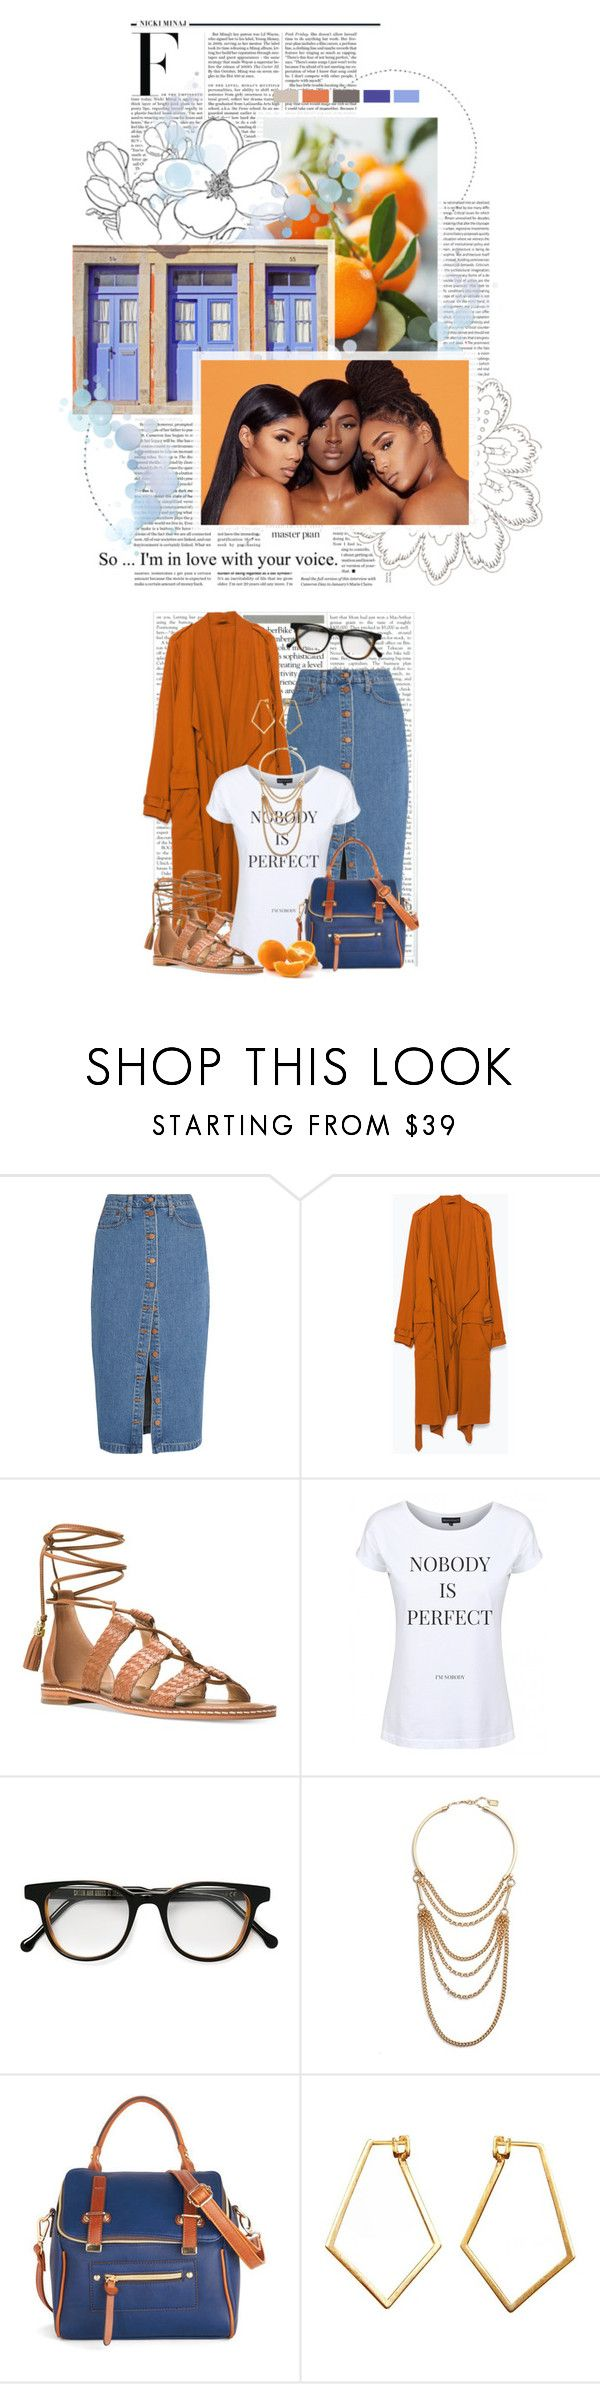 """""""ONLY 1 day left in the Color Gallery! Contest"""" by crystal85 ❤ liked on Polyvore featuring Nicki Minaj, Madewell, Zara, Michael Kors, Dead Legacy, Cutler and Gross, Karine Sultan and Dutch Basics"""